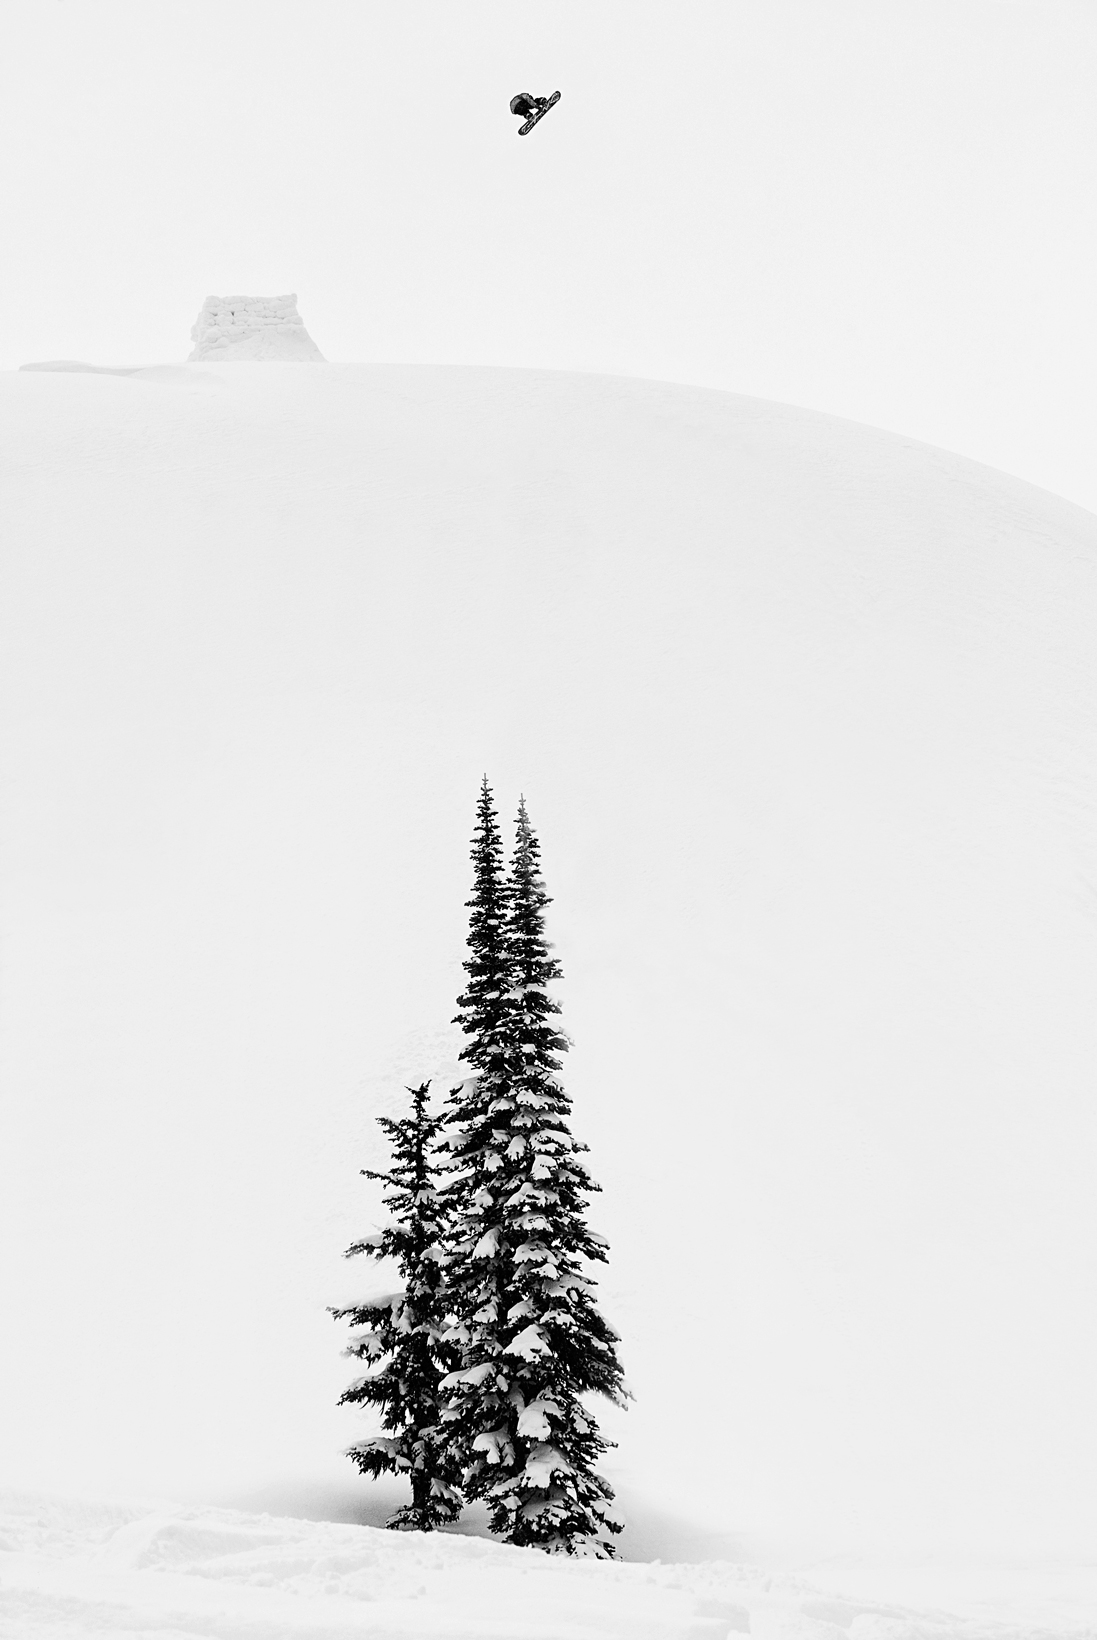 Elias_Elhardt_FRT_3_Whistler_Backcountry02